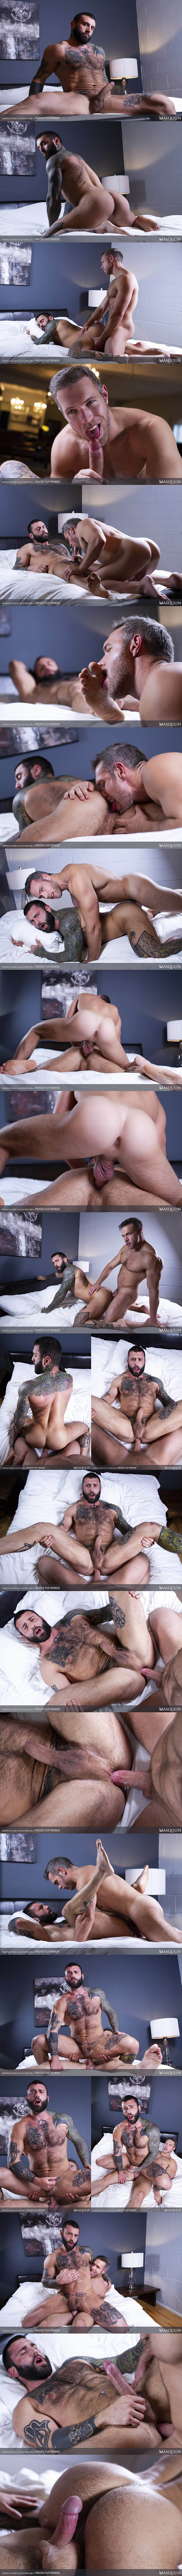 Hung gay porn star Alex Mecum barebacks former MMA fighter, masciline inked straight beefcake Markus Kage's tight virgin ass in Markus' bottoming debut in Prostate Play Premiere at Masqulin 01